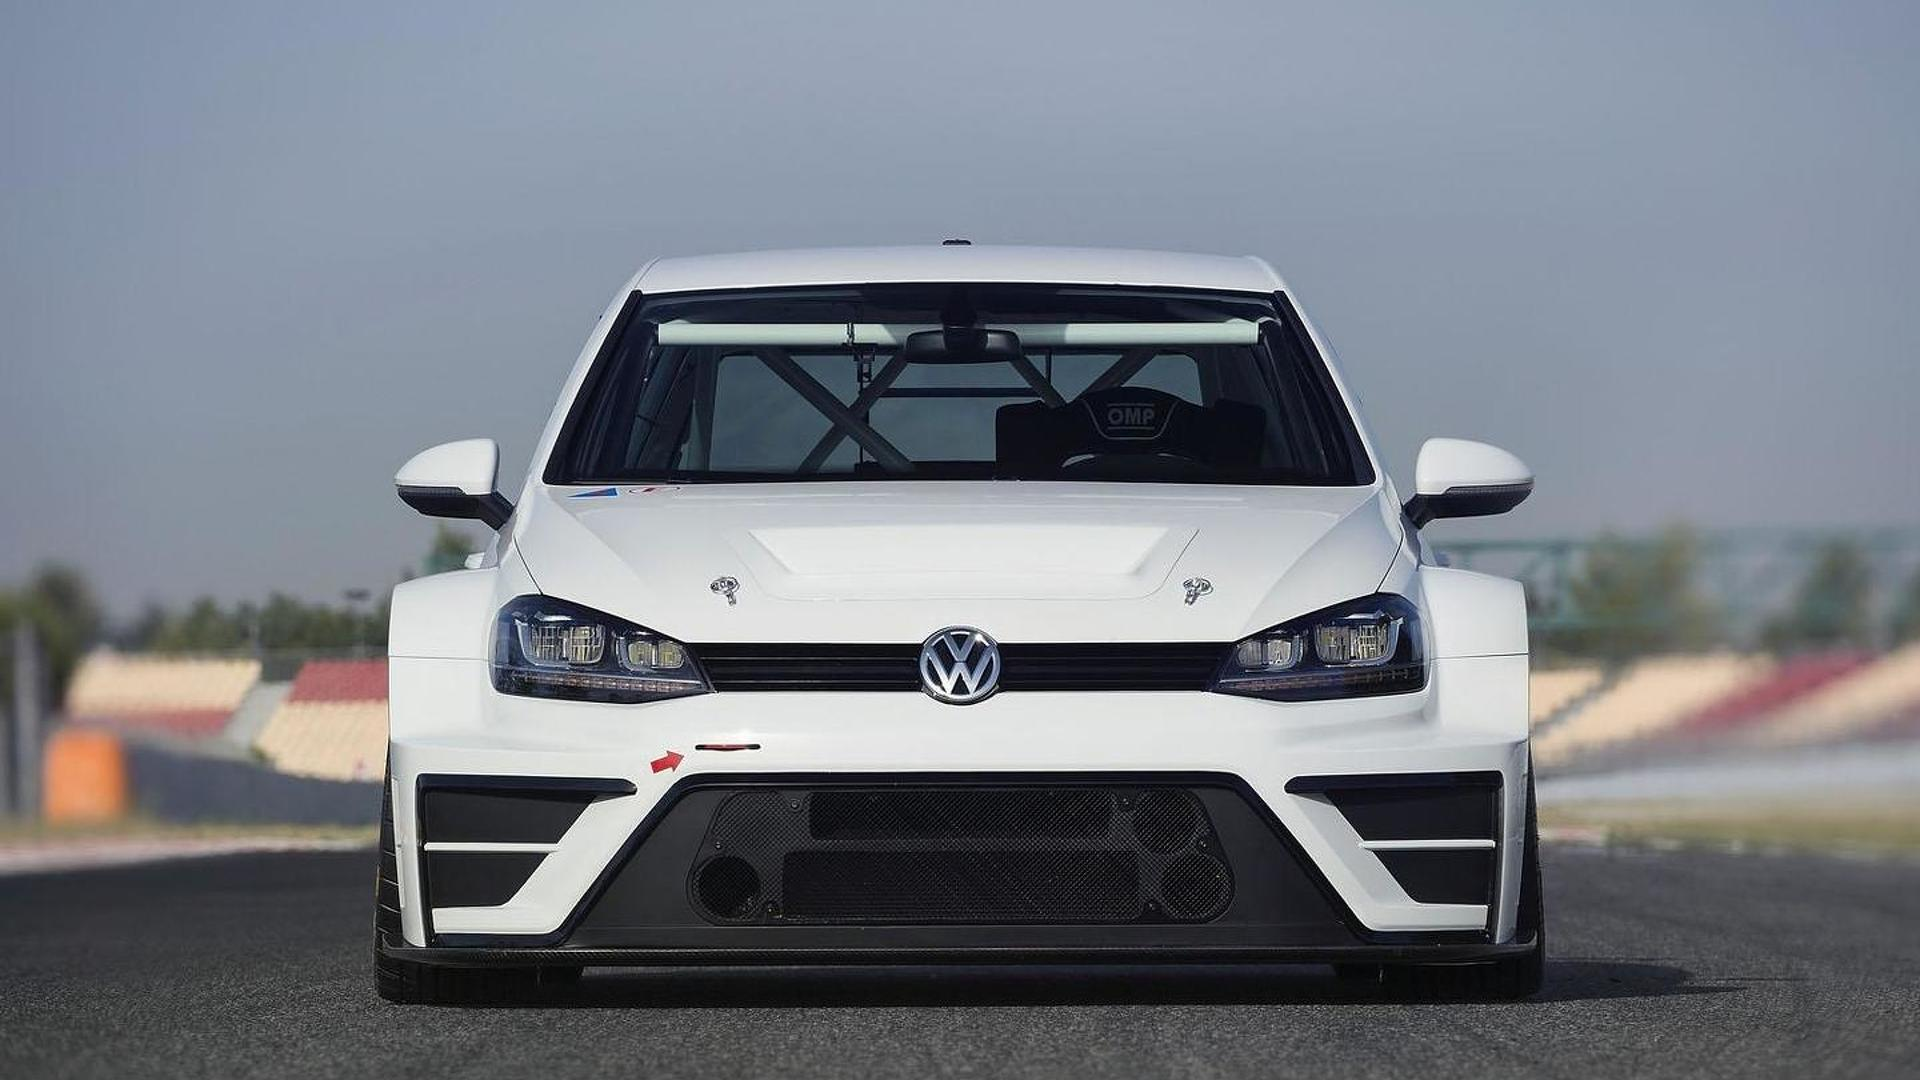 Volkswagen Motorsport unveils their Golf race car concept